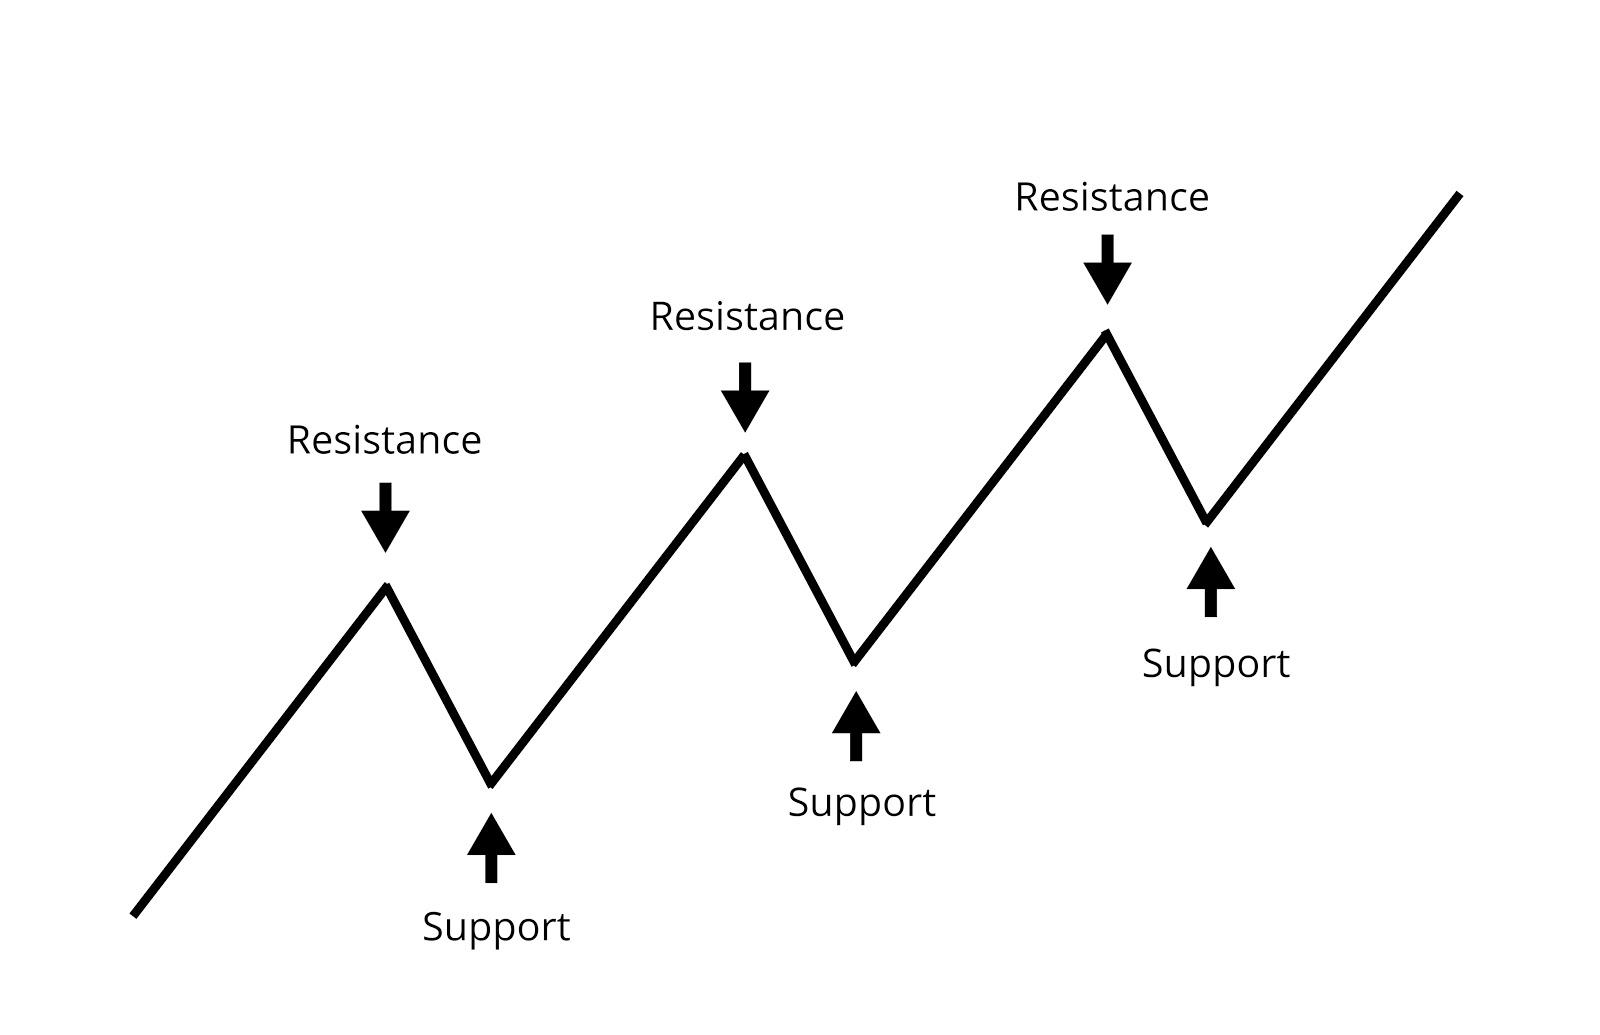 Support and Resistance - Uptrend